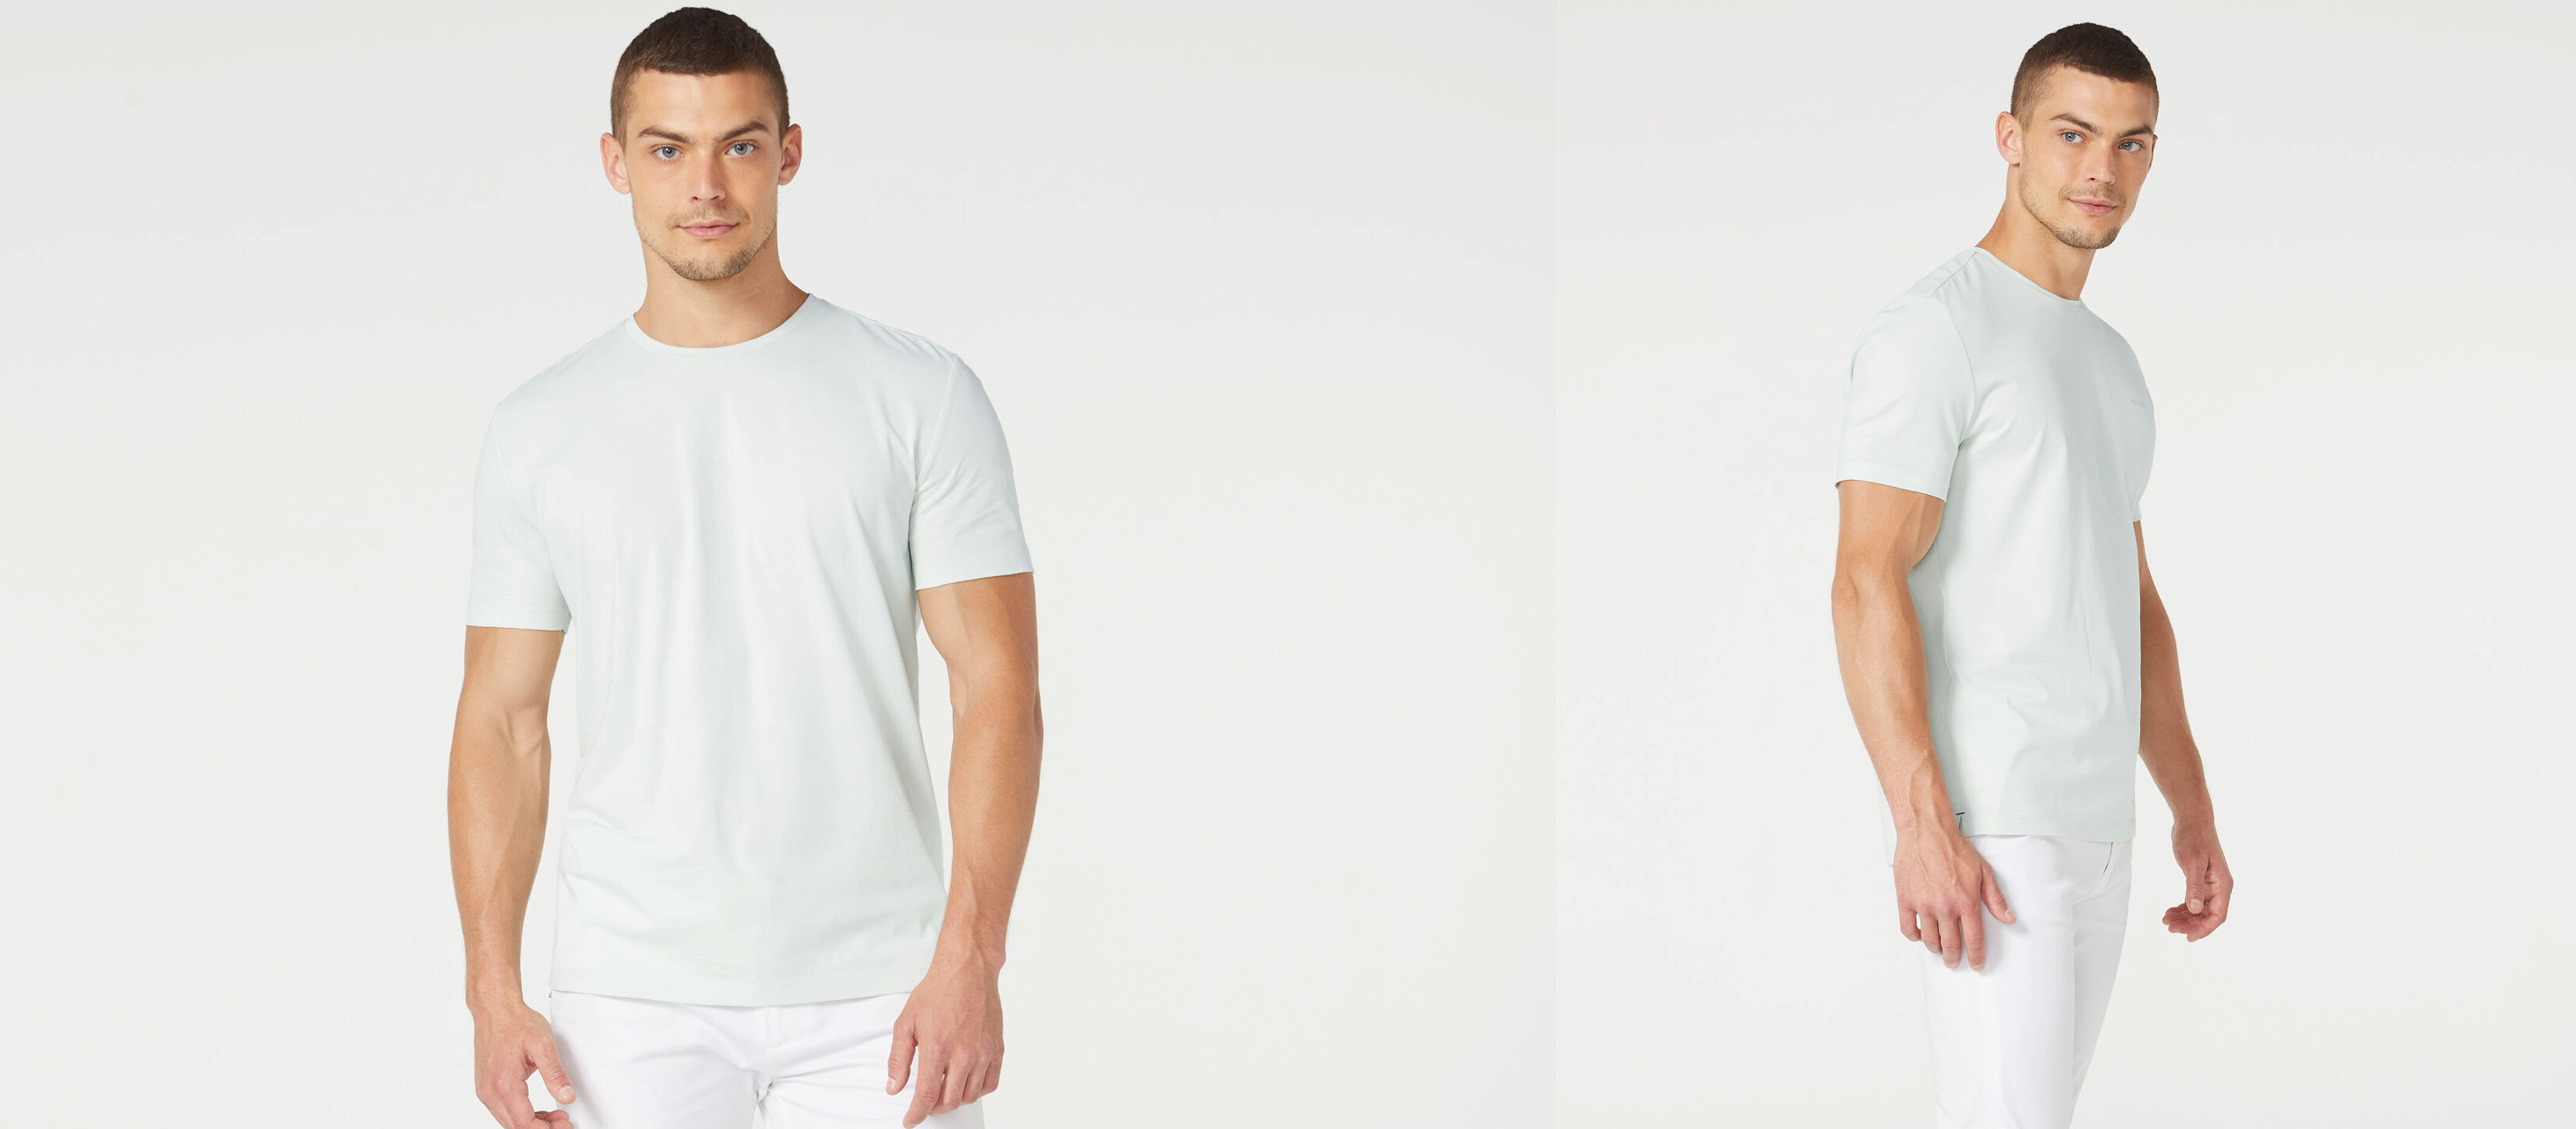 Men's Tees Style Guide